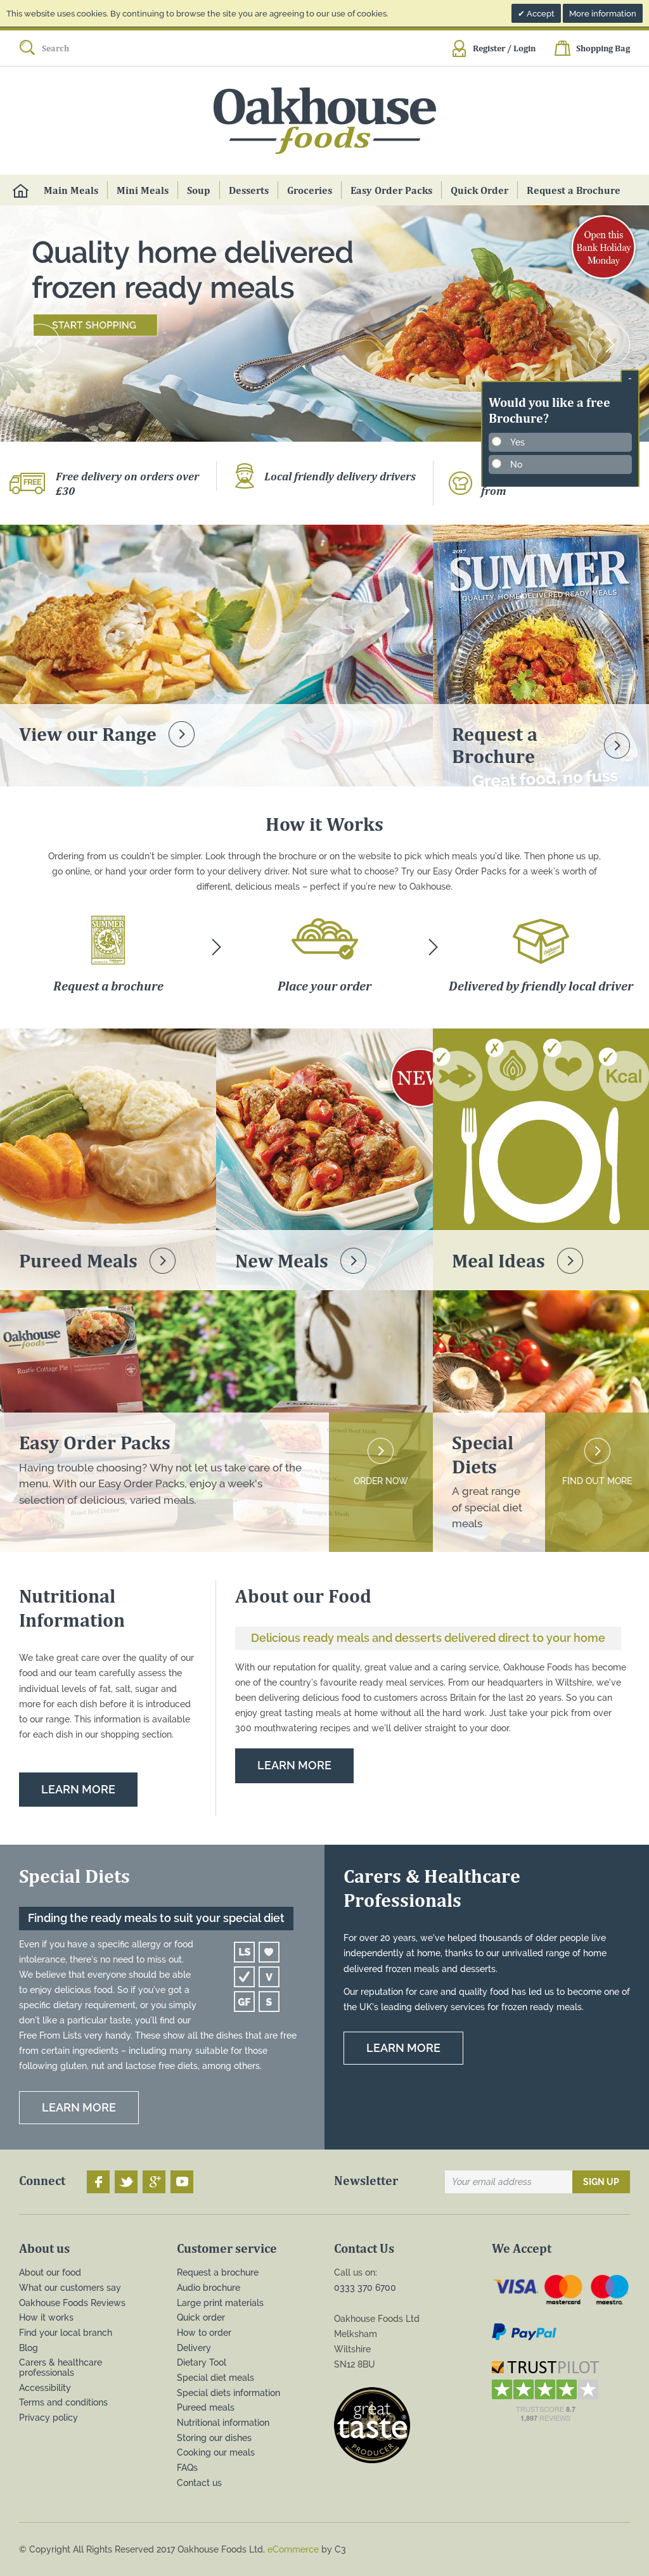 Oakhousefoods Competitors, Revenue and Employees - Owler Company Profile